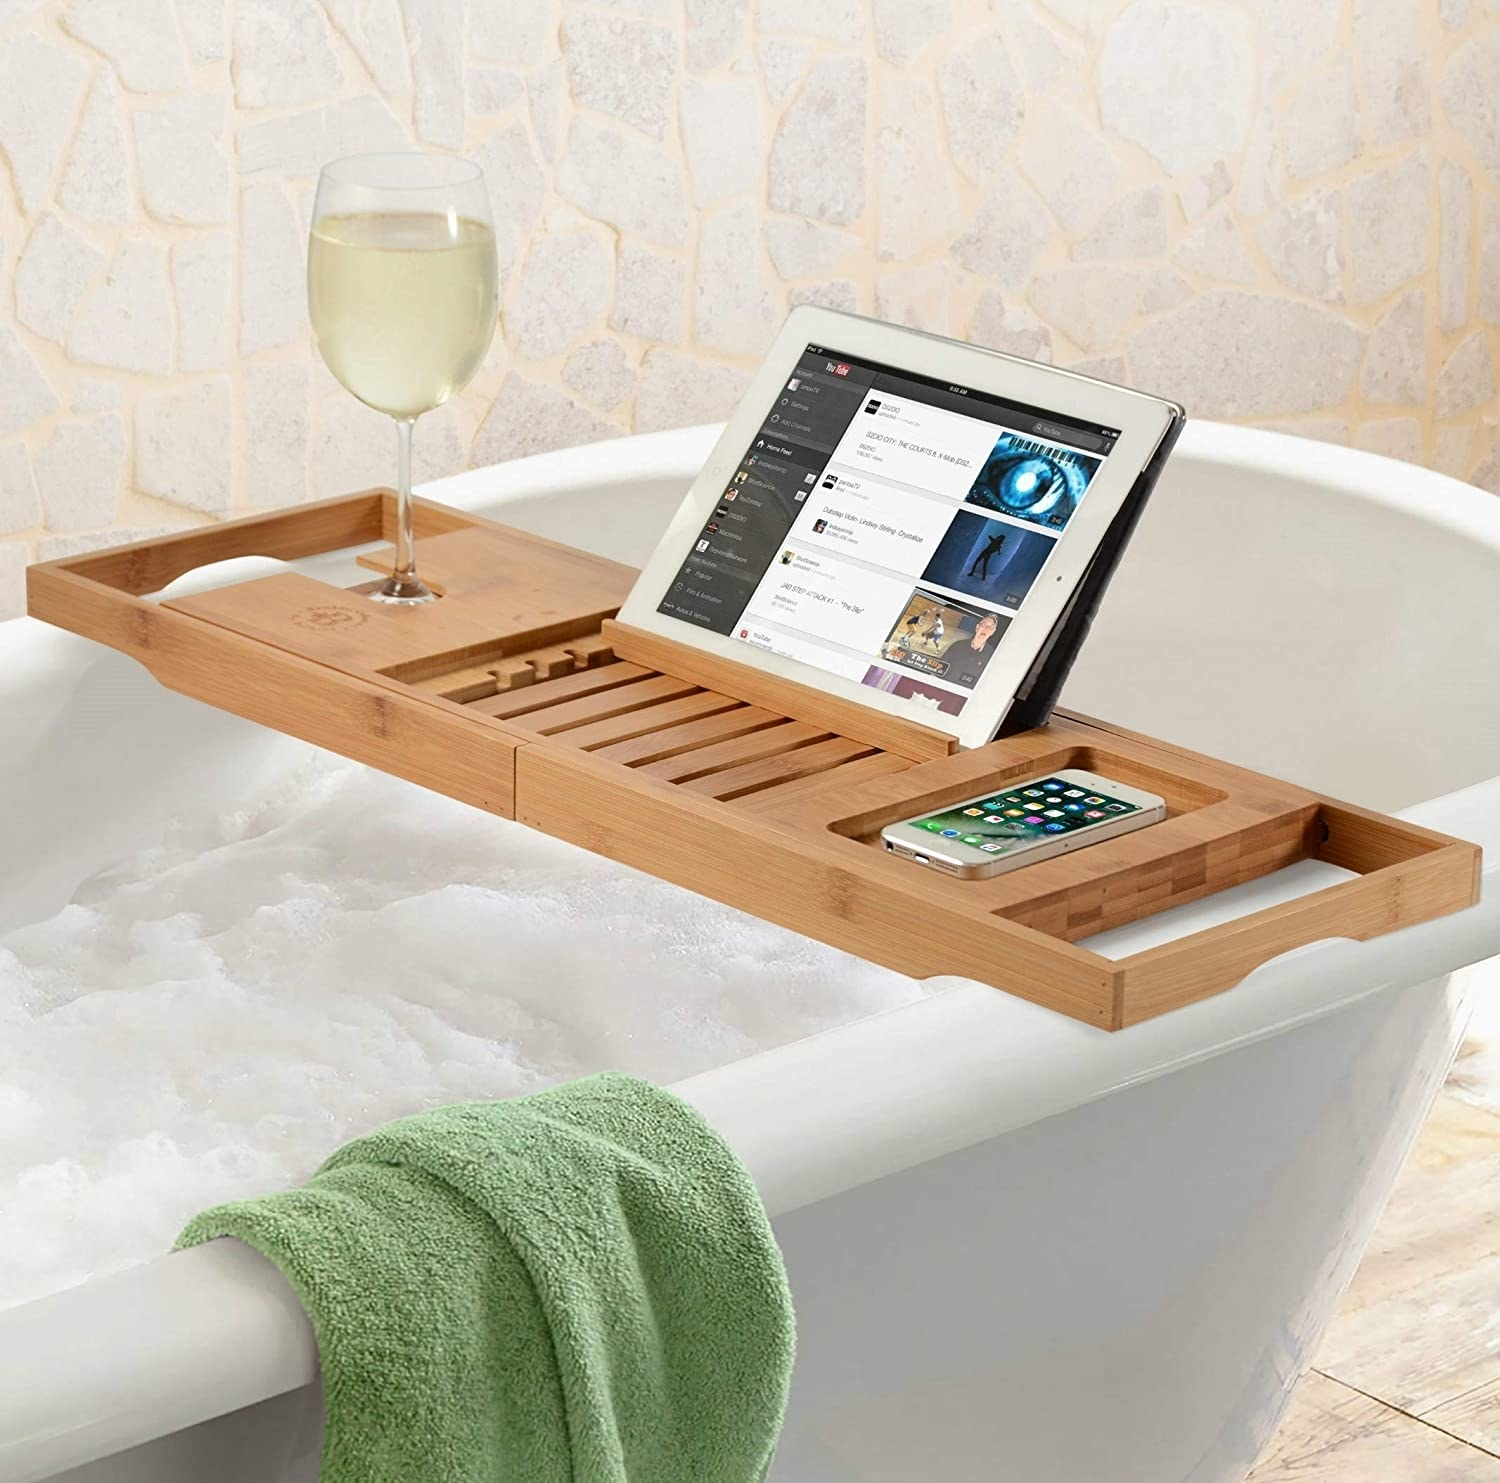 The bath caddy with a book, wine glass, and tablet on it